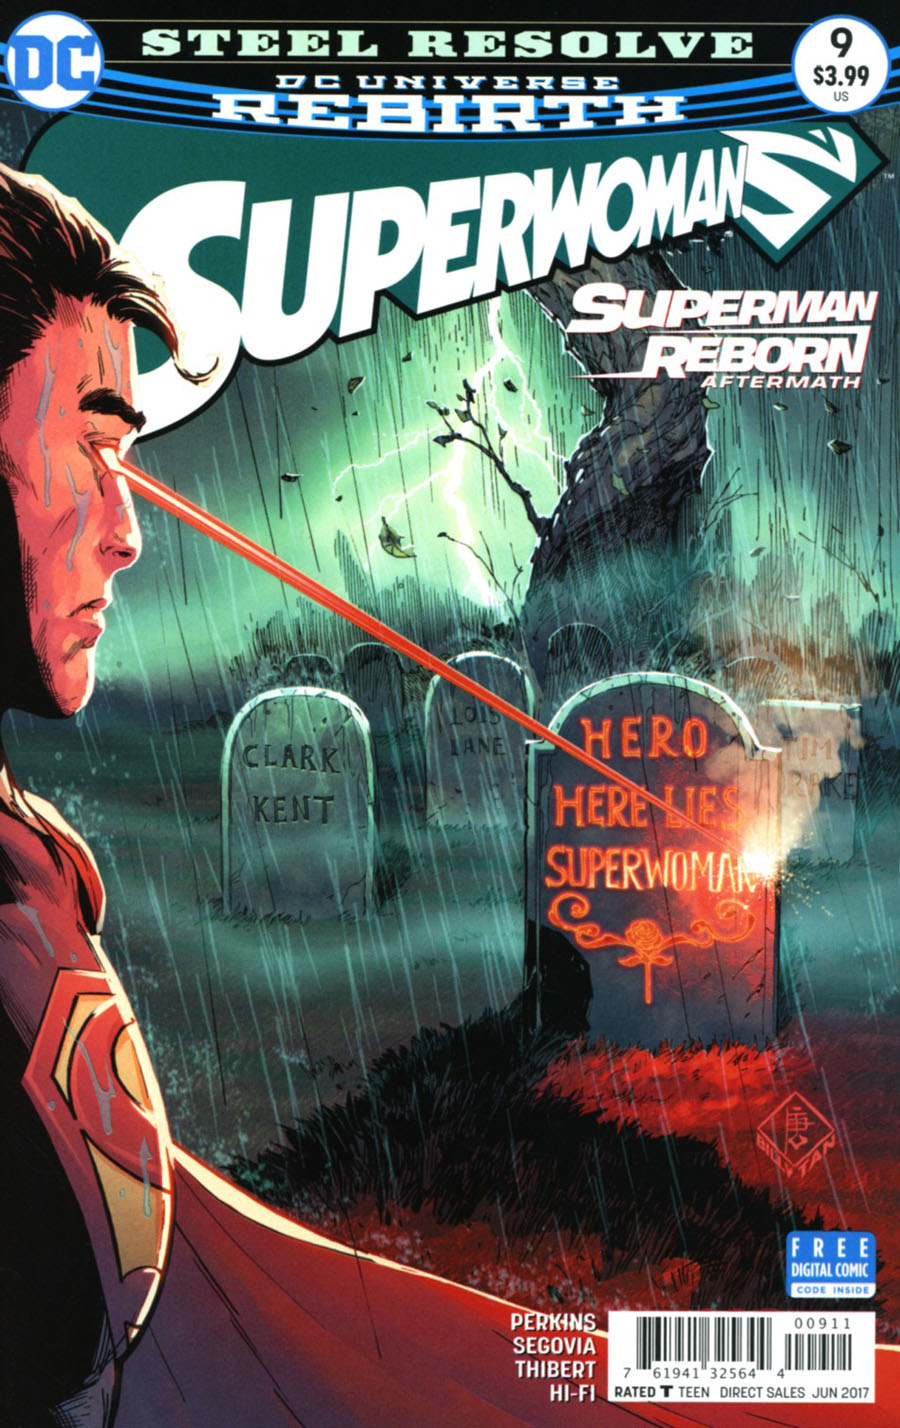 Superwoman #9 Cover A Regular Billy Tan Cover (Superman Reborn Aftermath Tie-In)